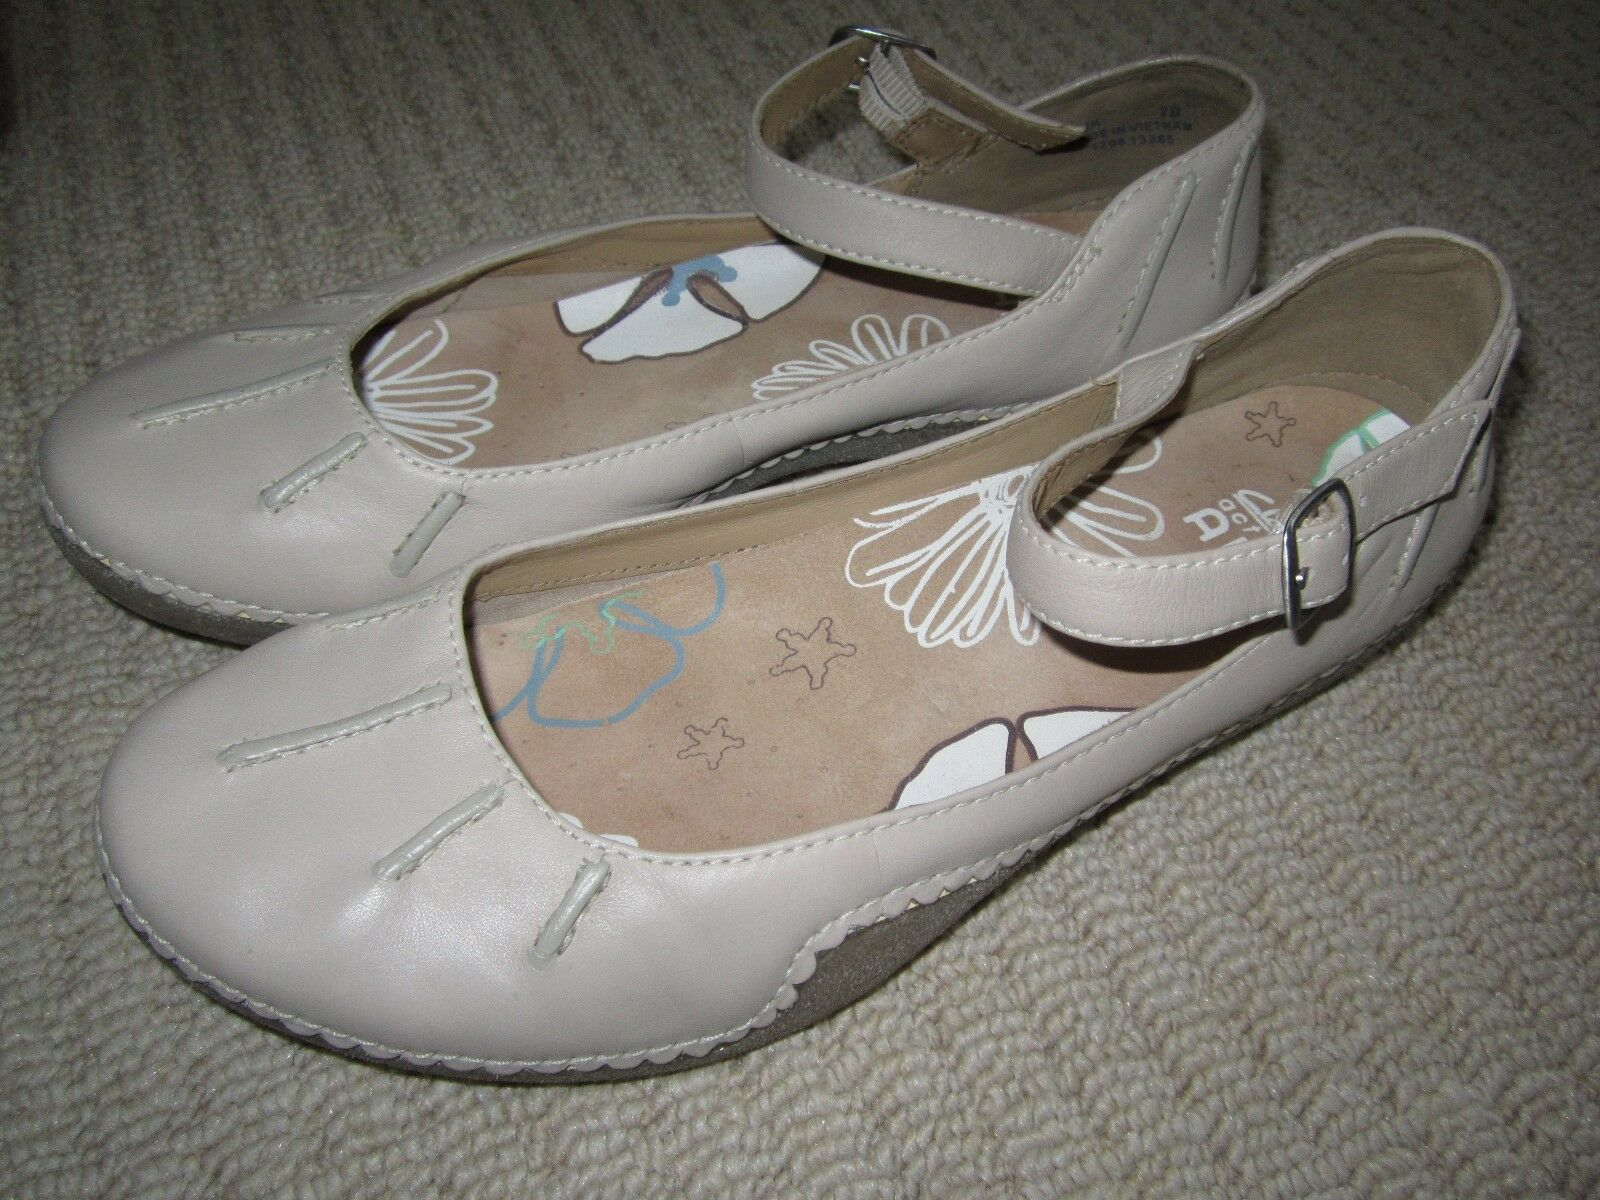 Clarks Ladies 'Active Air' Cream Leather shoes Ankle Buckle Fastening UK 7D Used